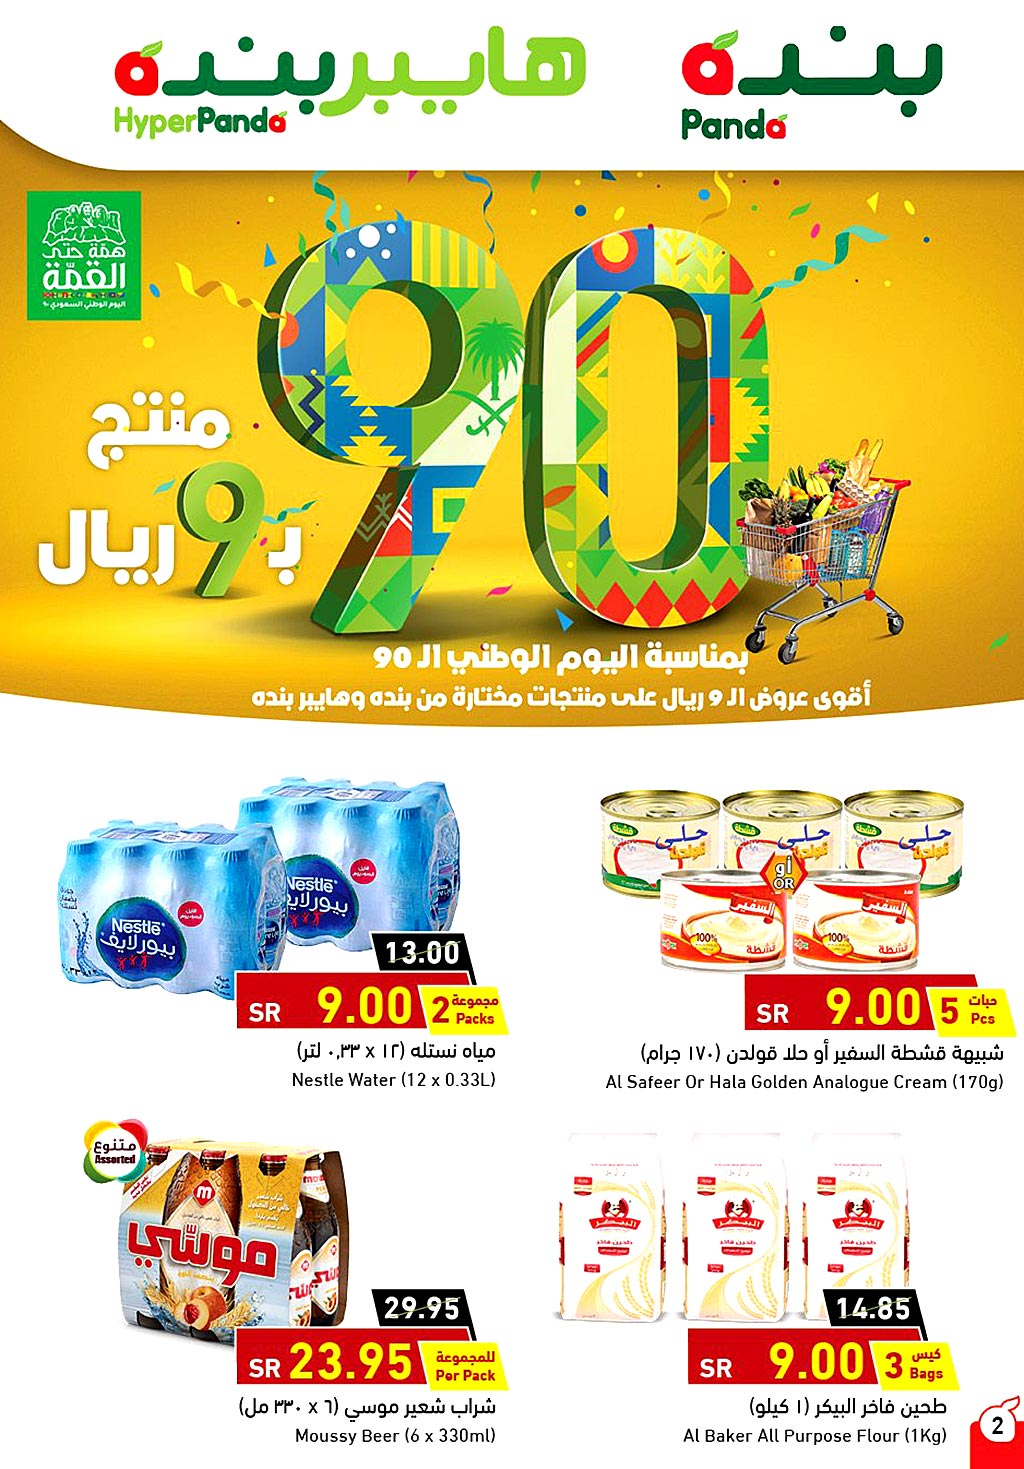 hyperpanda offers from 16sep to 22sep 2020 page number 2 عروض هايبر بنده من 16 سبتمبر حتى 22 سبتمبر 2020 صفحة رقم 2